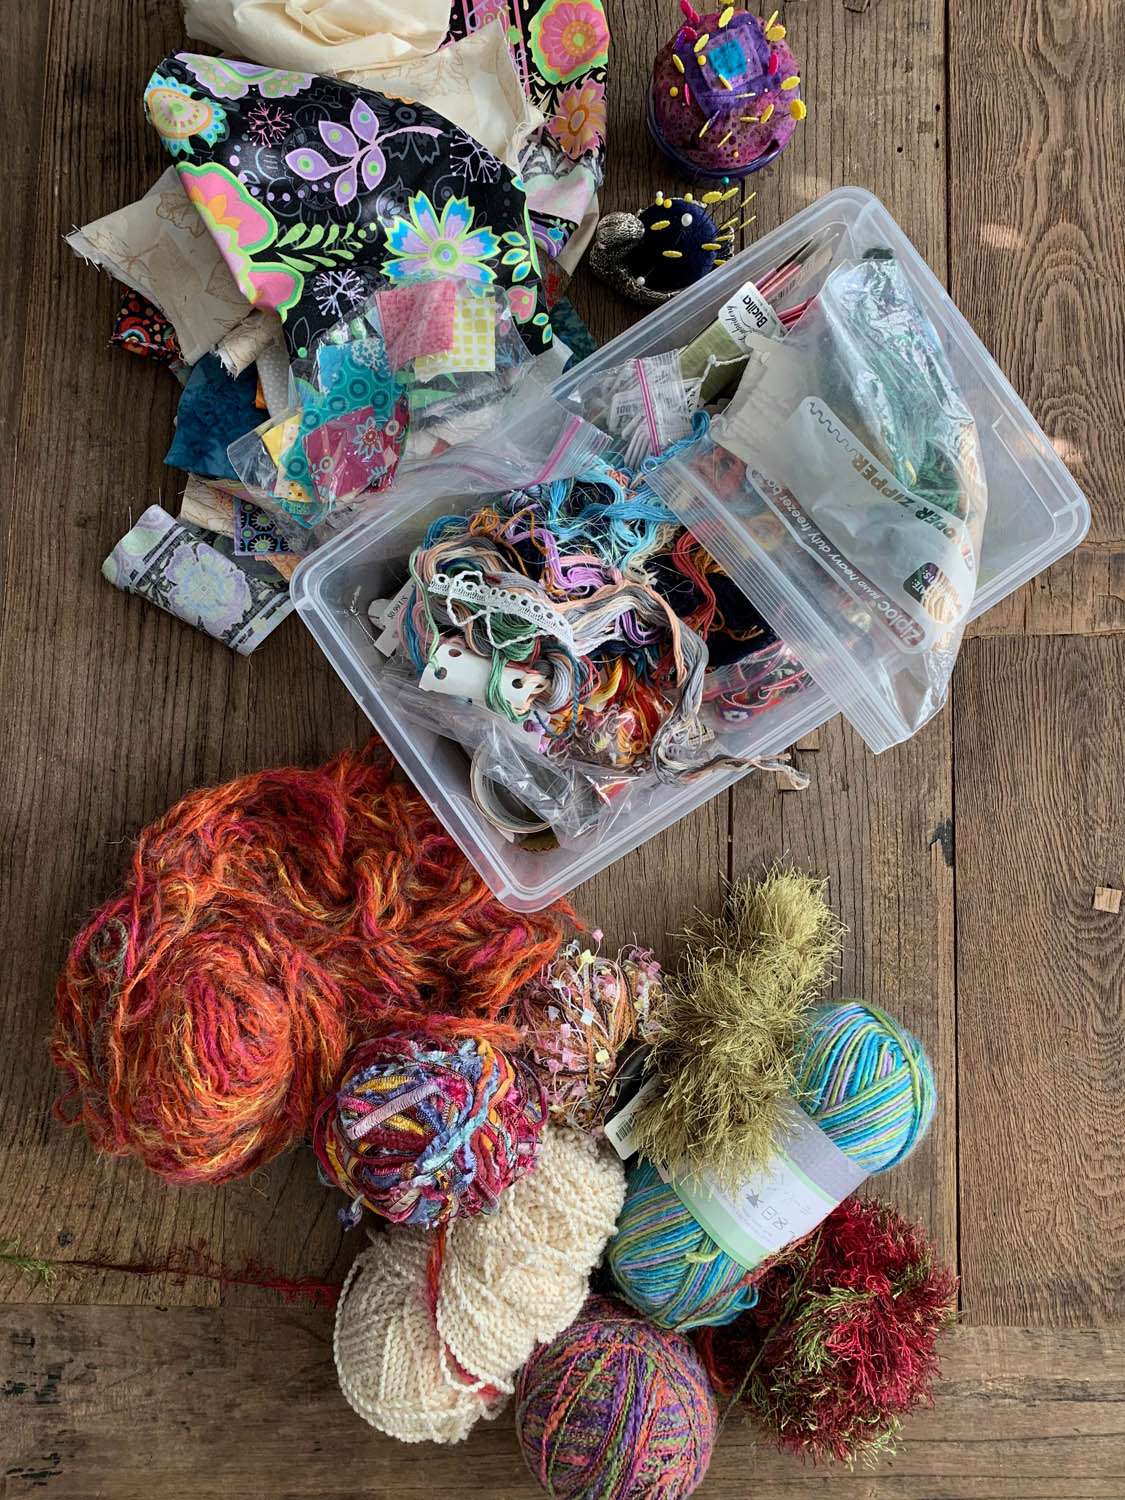 fabric lace and yarn fiber scraps from stash in bins